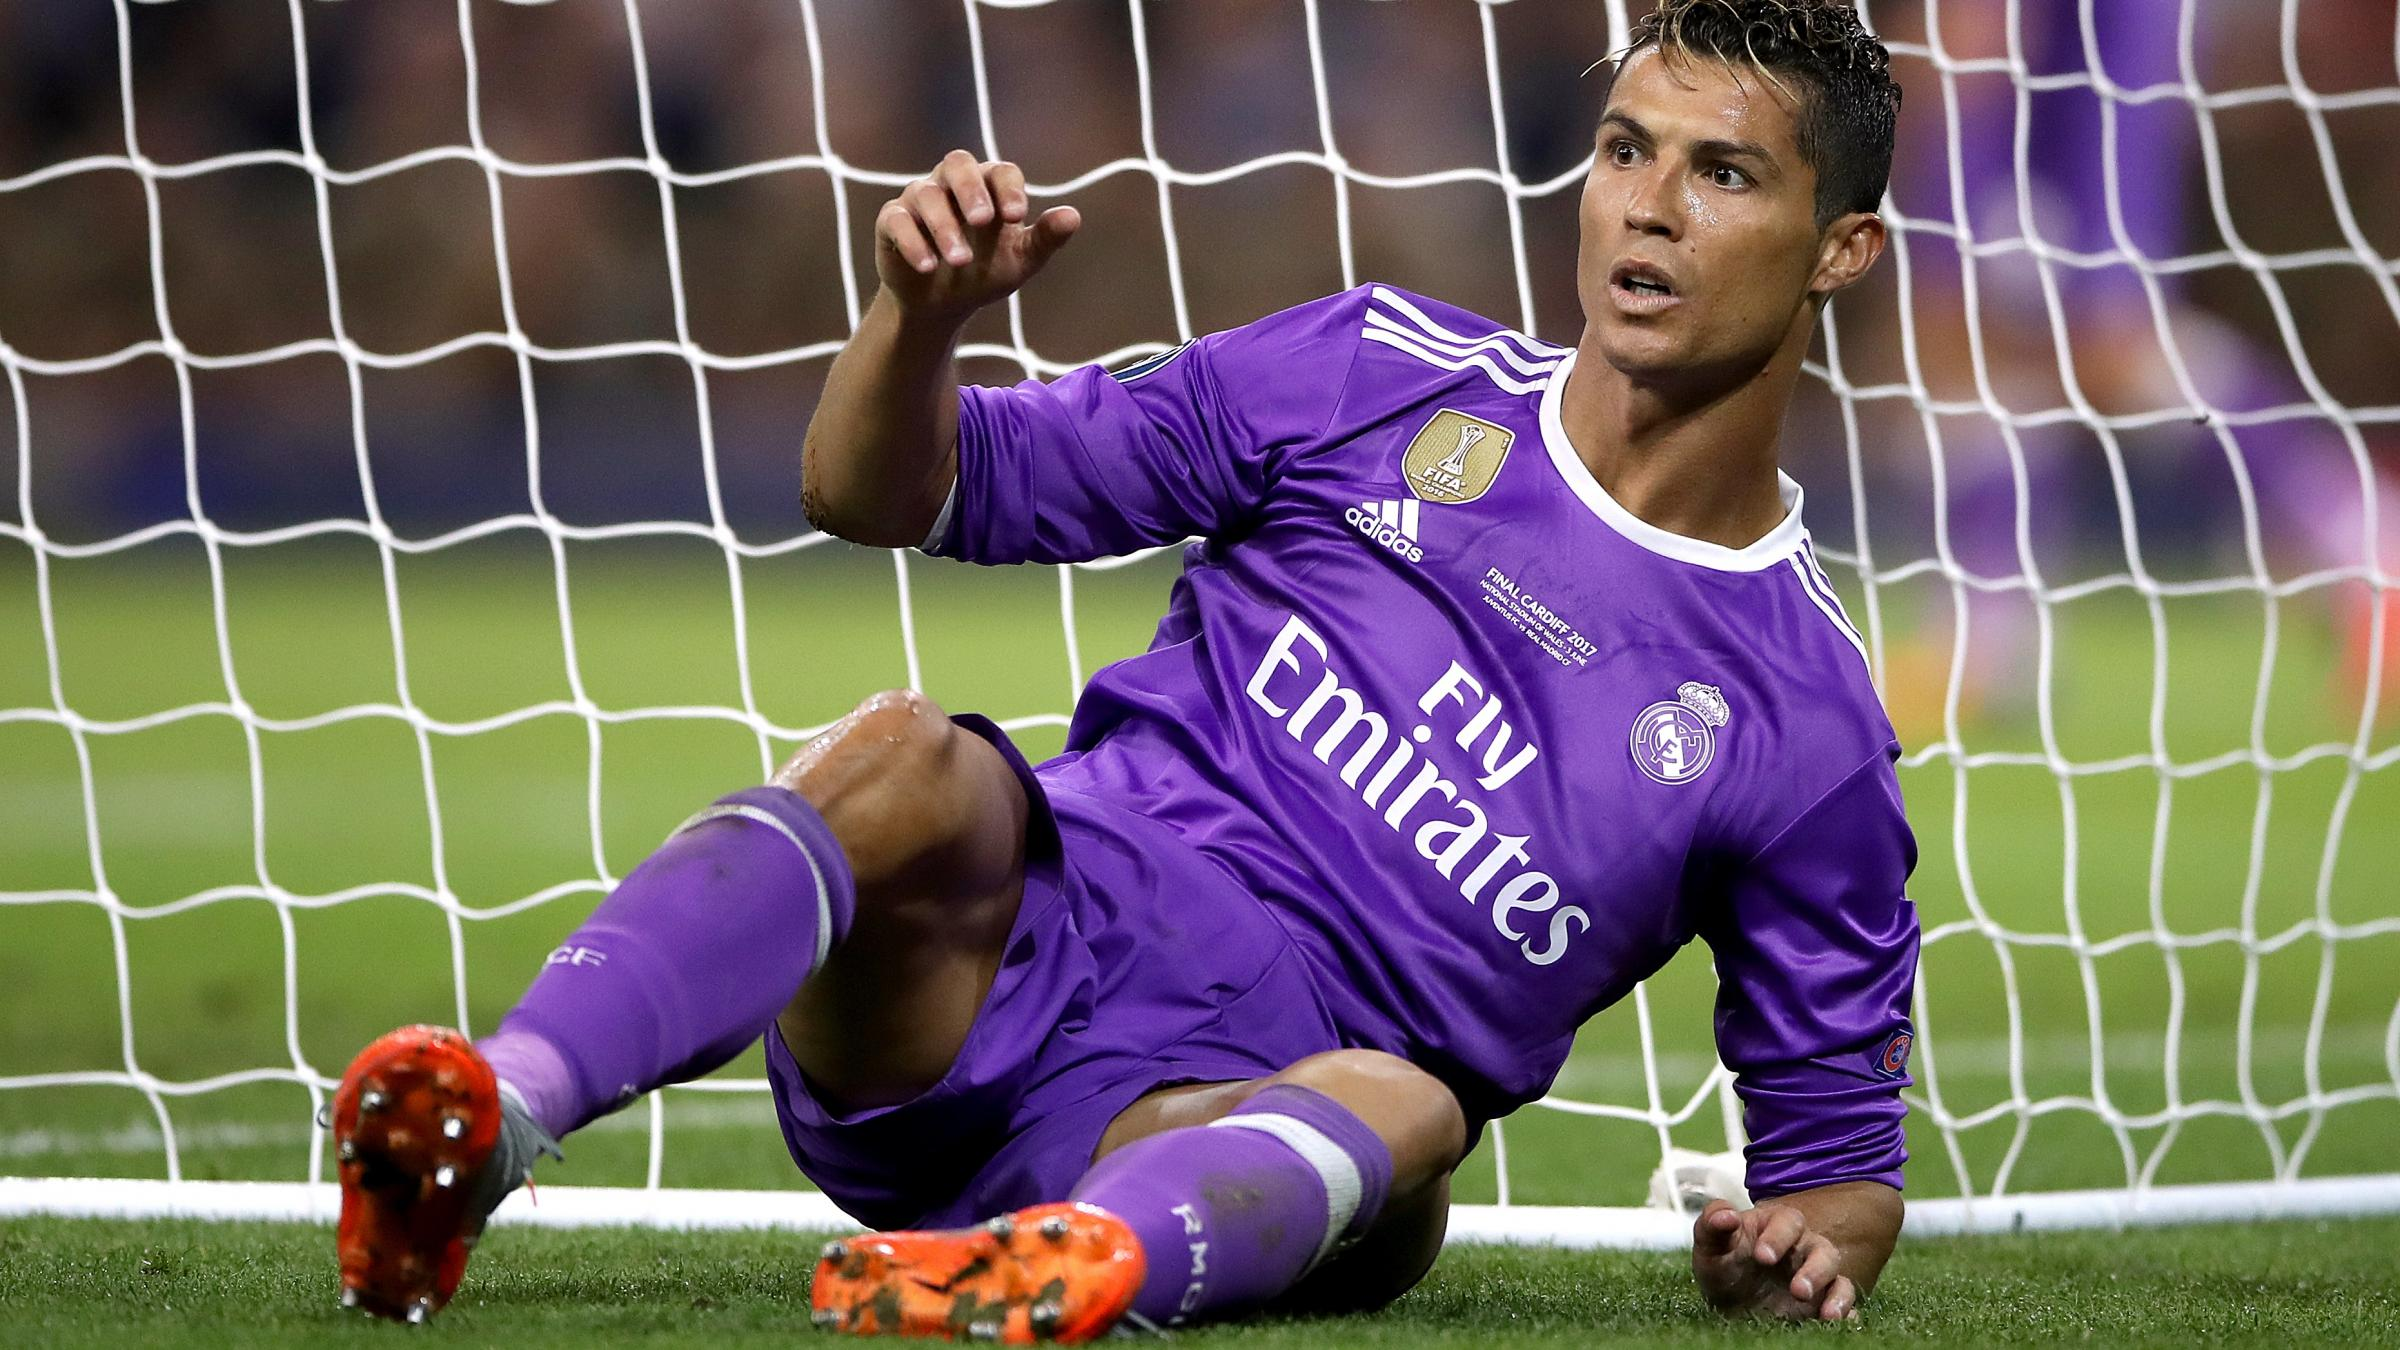 Cristiano Ronaldo hit with €14.7 million tax fraud charge